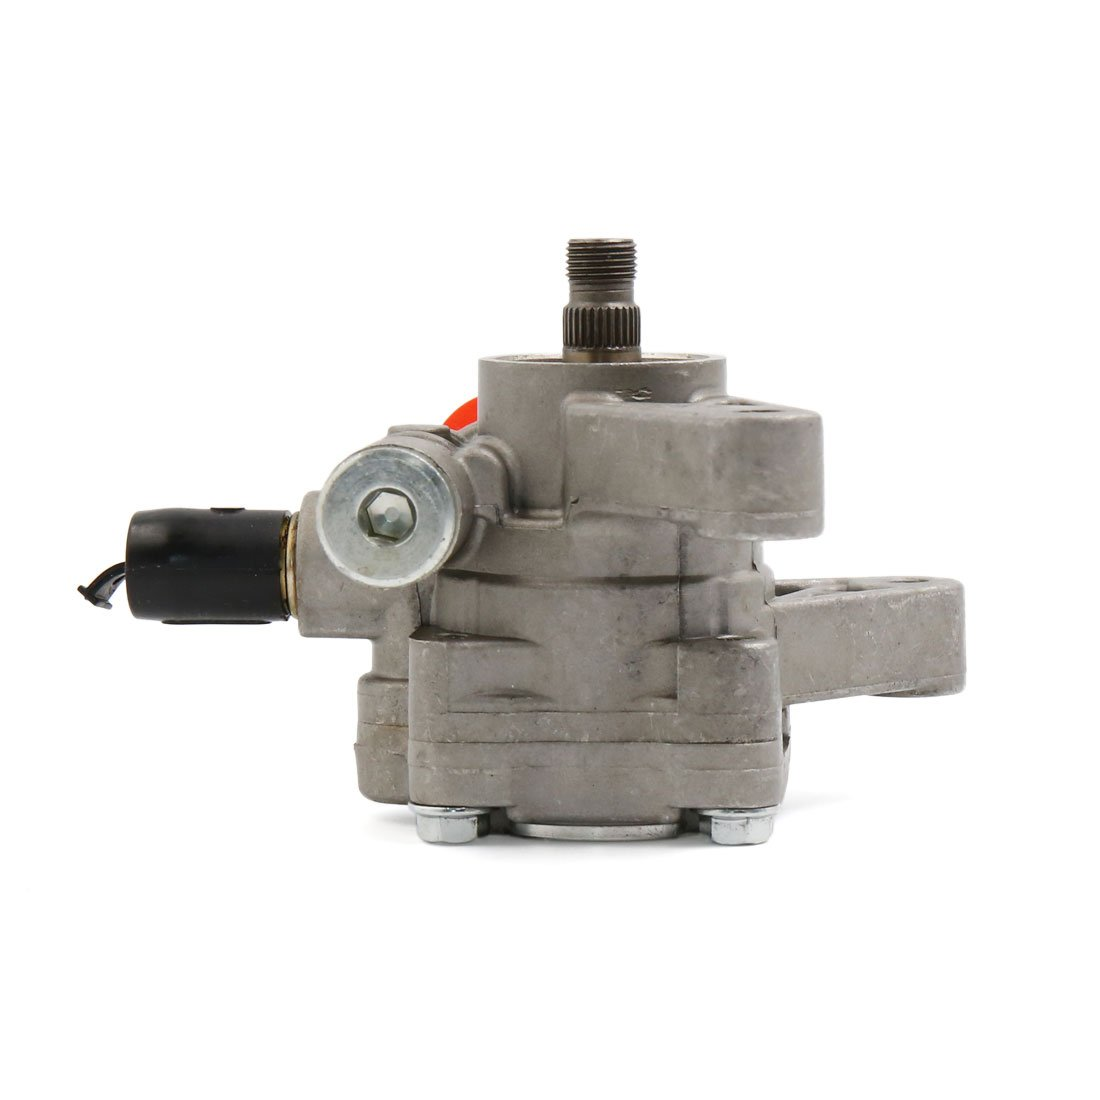 uxcell New Power Assisted Steering Pump 21-5919 56110PAAA01 for 1998-2002 Honda Accord 2.3L